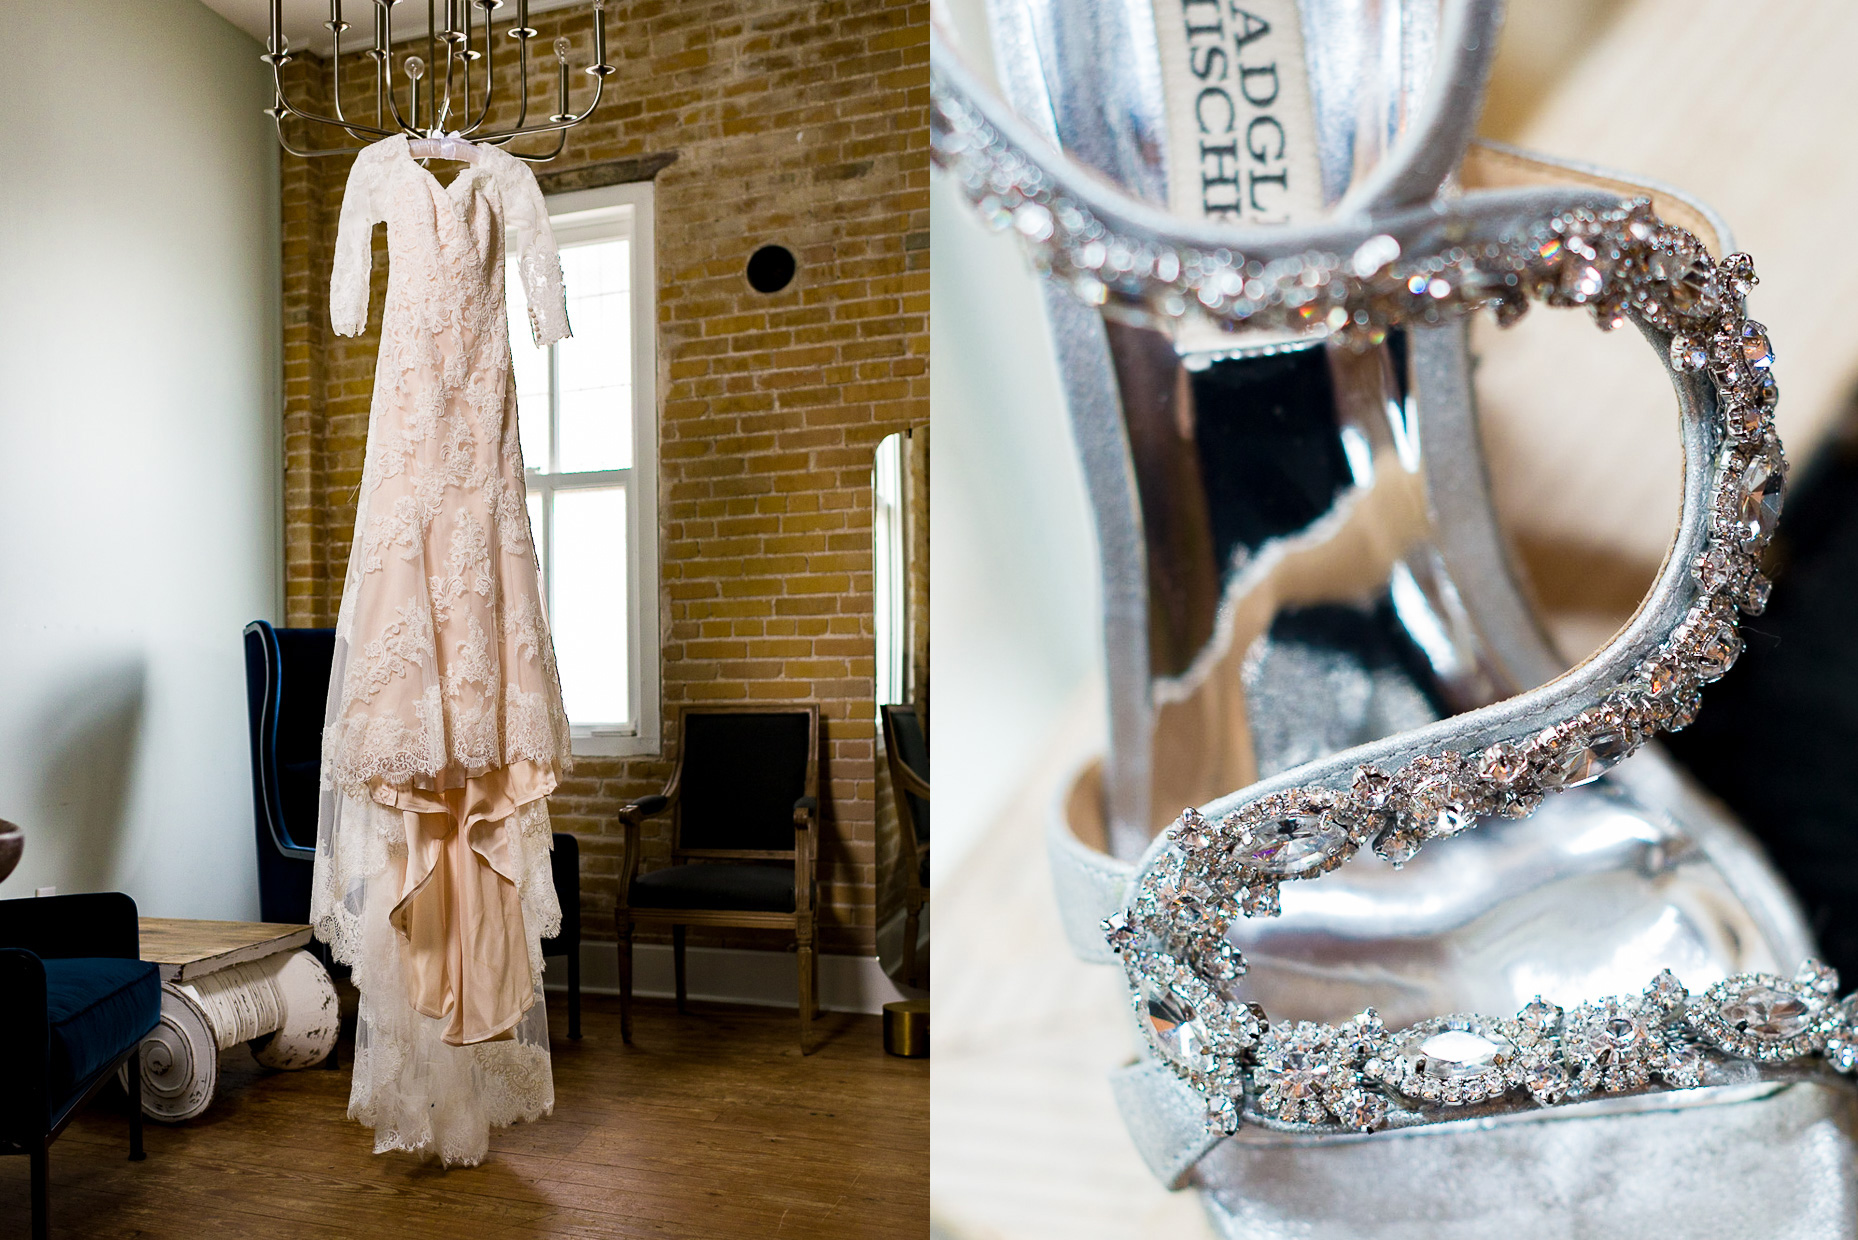 wedding-dress-lace-austin-photographer-details-shoe-designer-tx